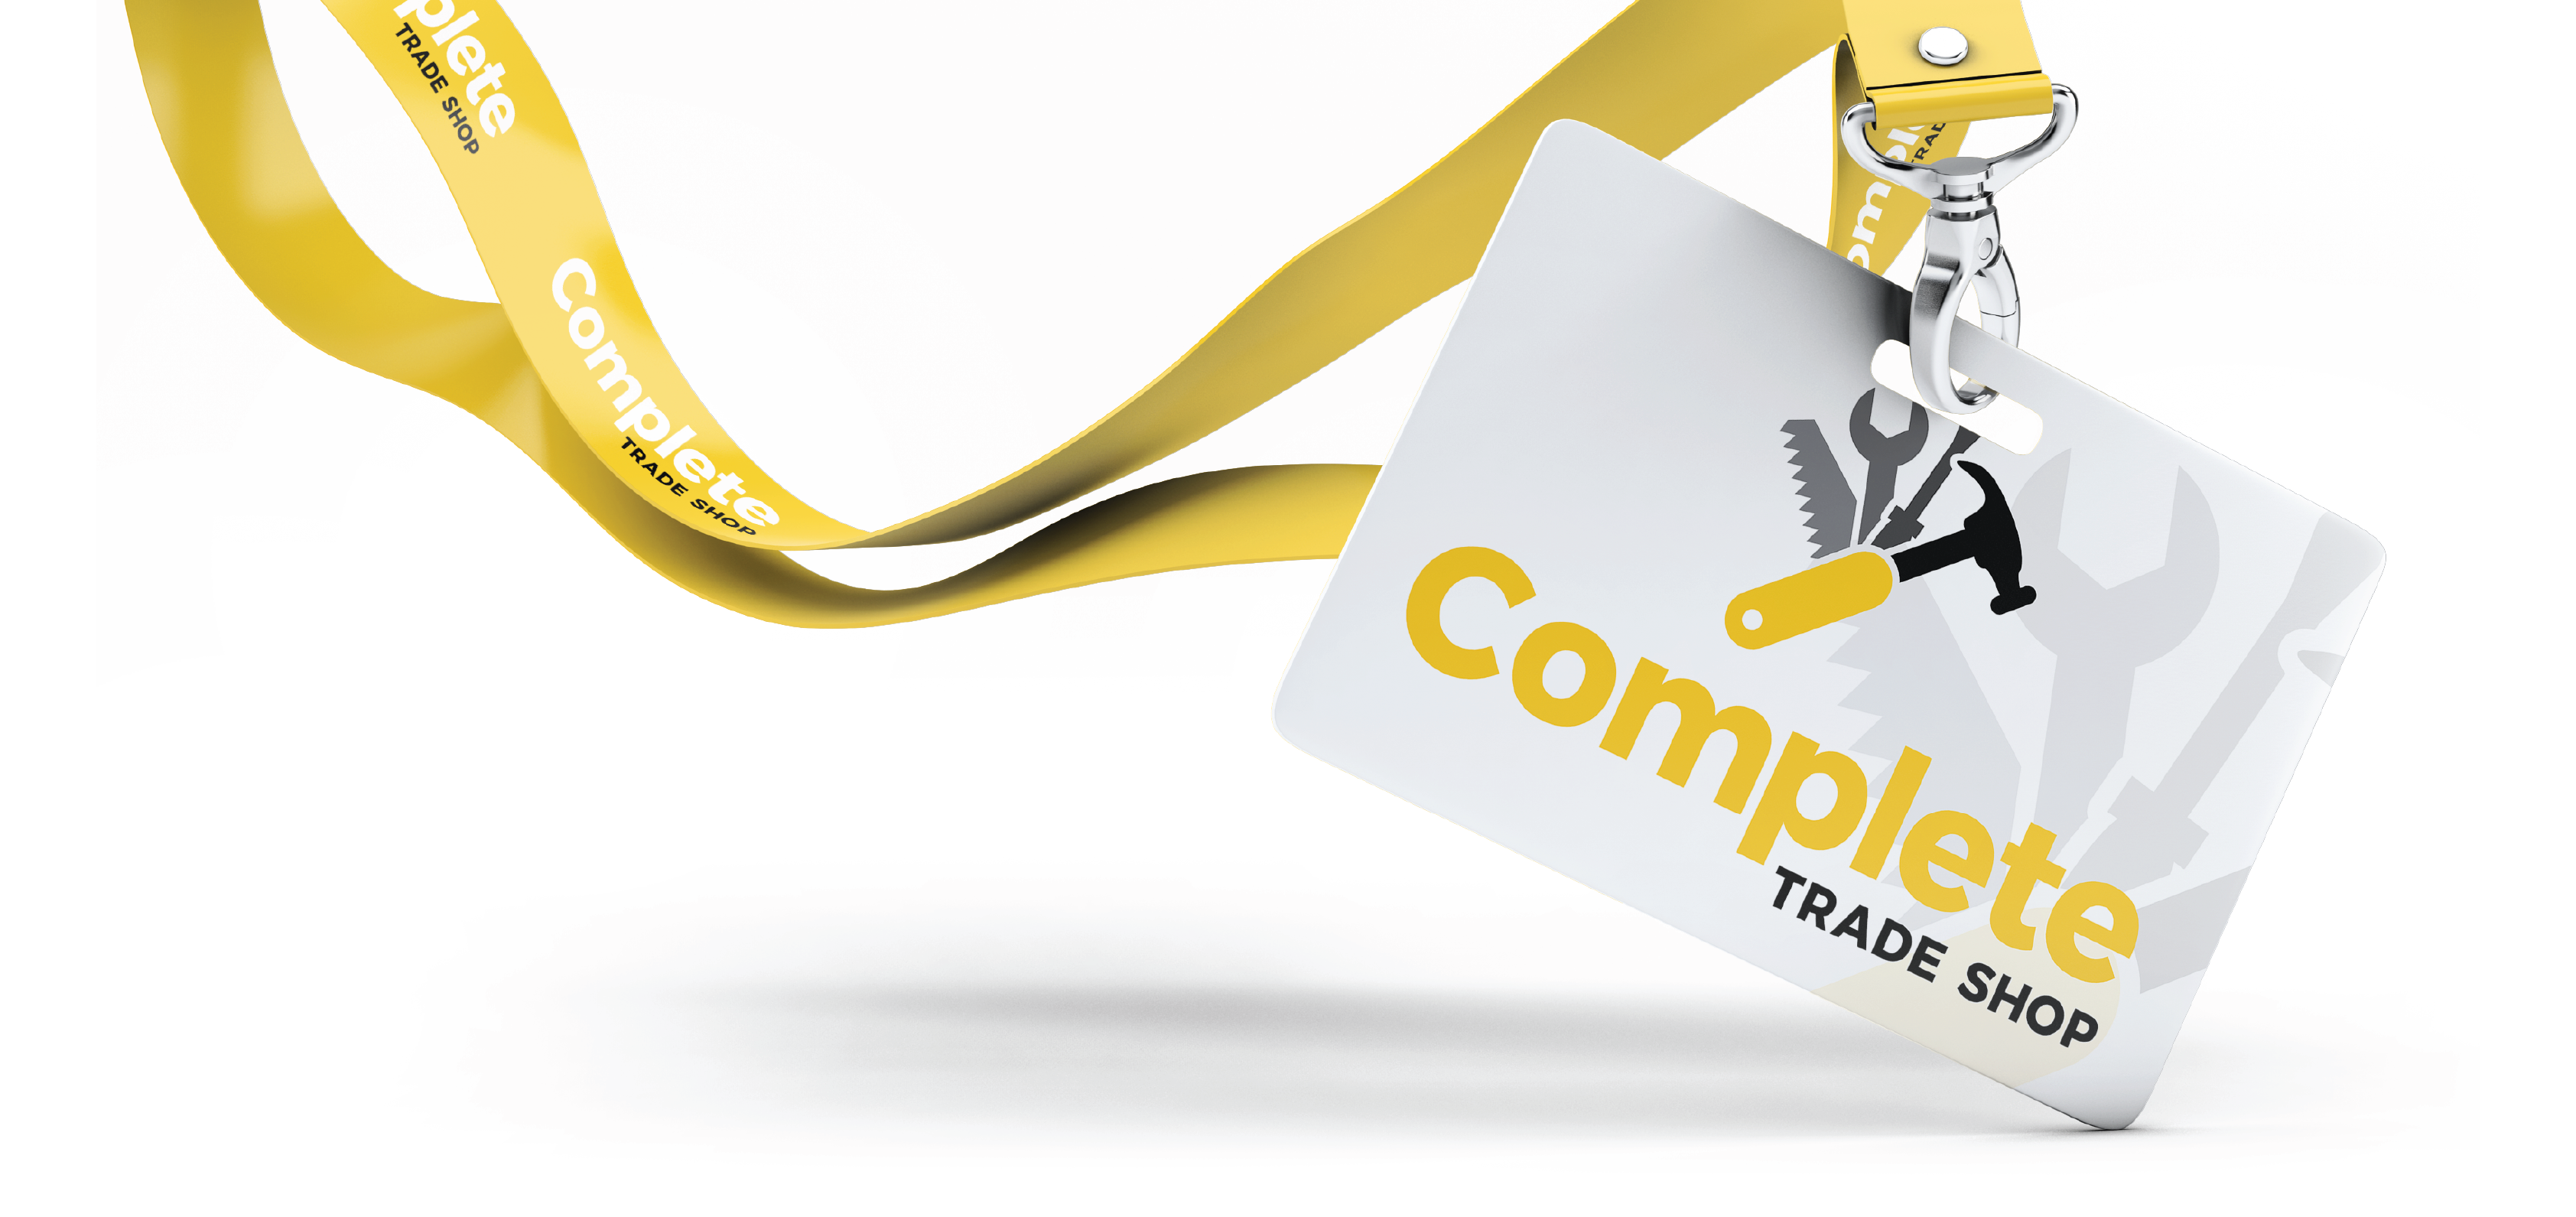 complete trade shop brand logo design lanyard